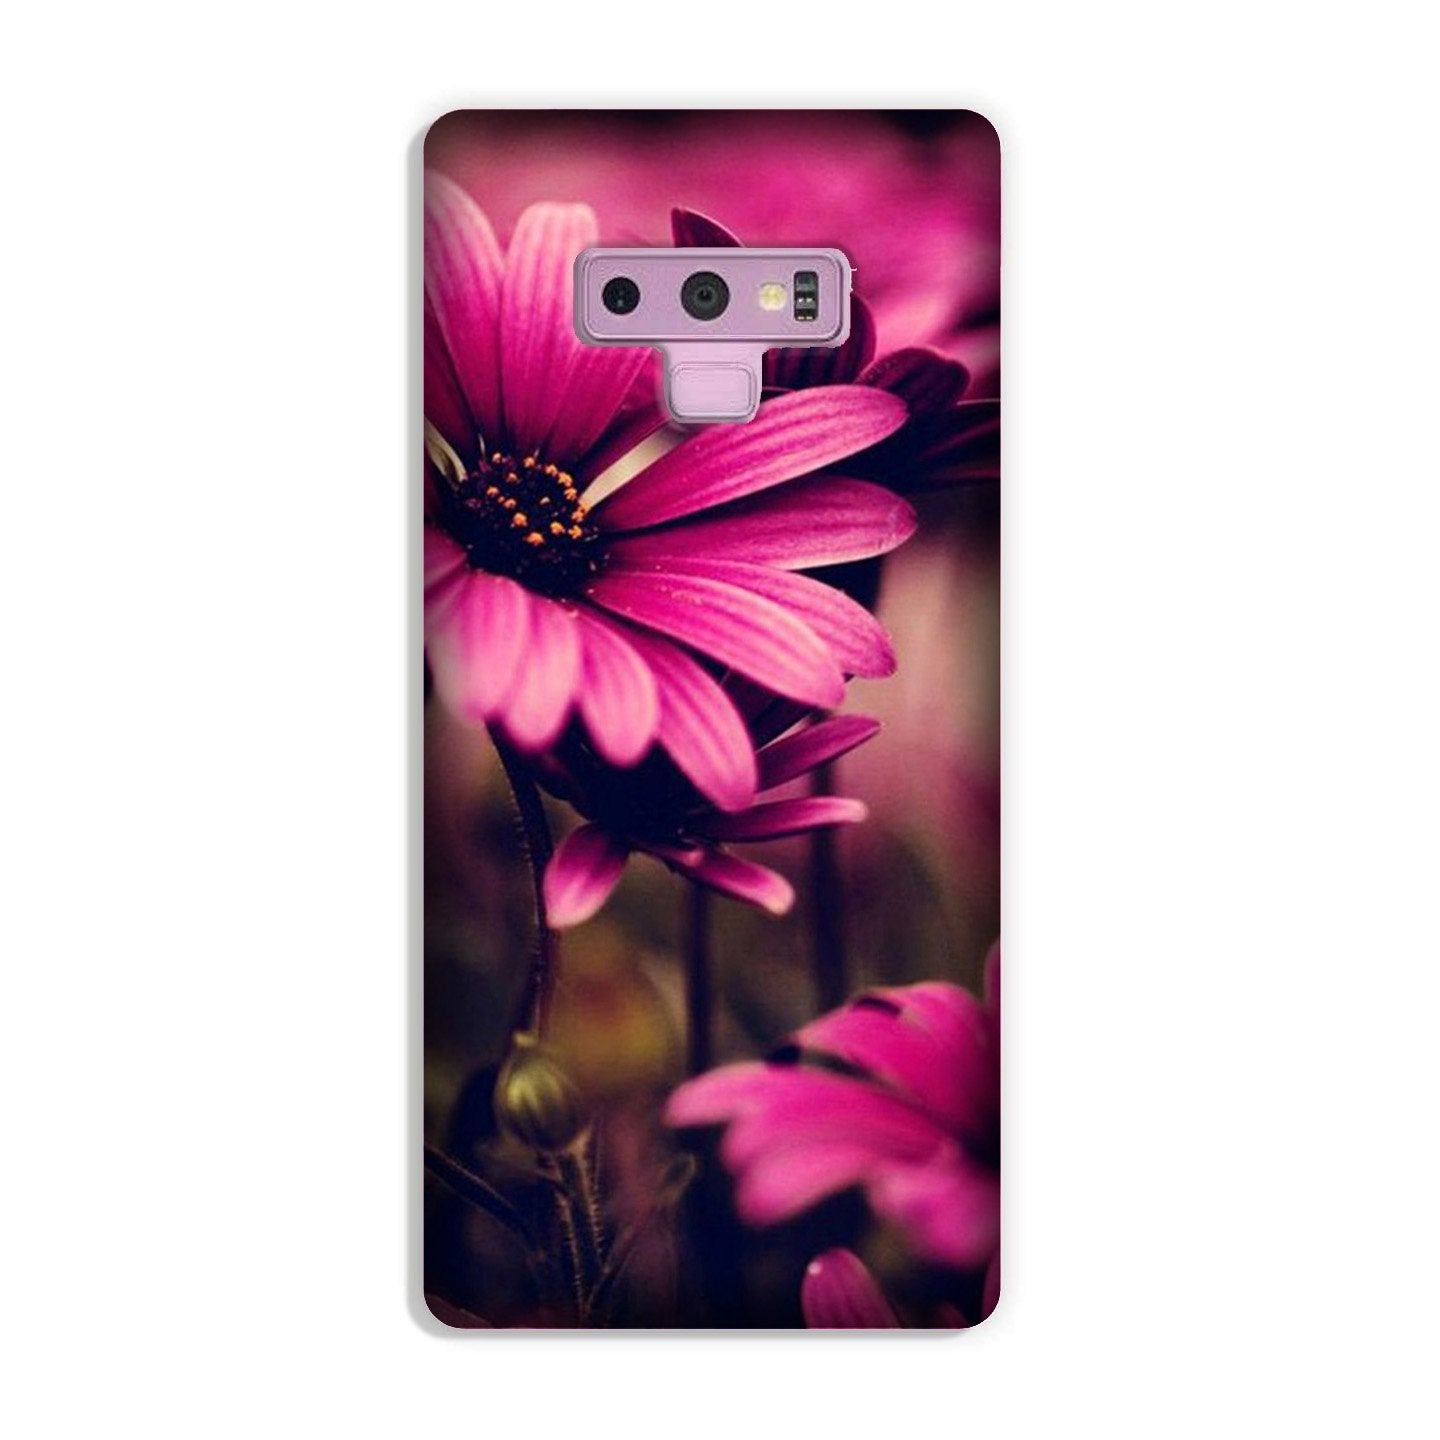 Purple Daisy Case for Galaxy Note 9